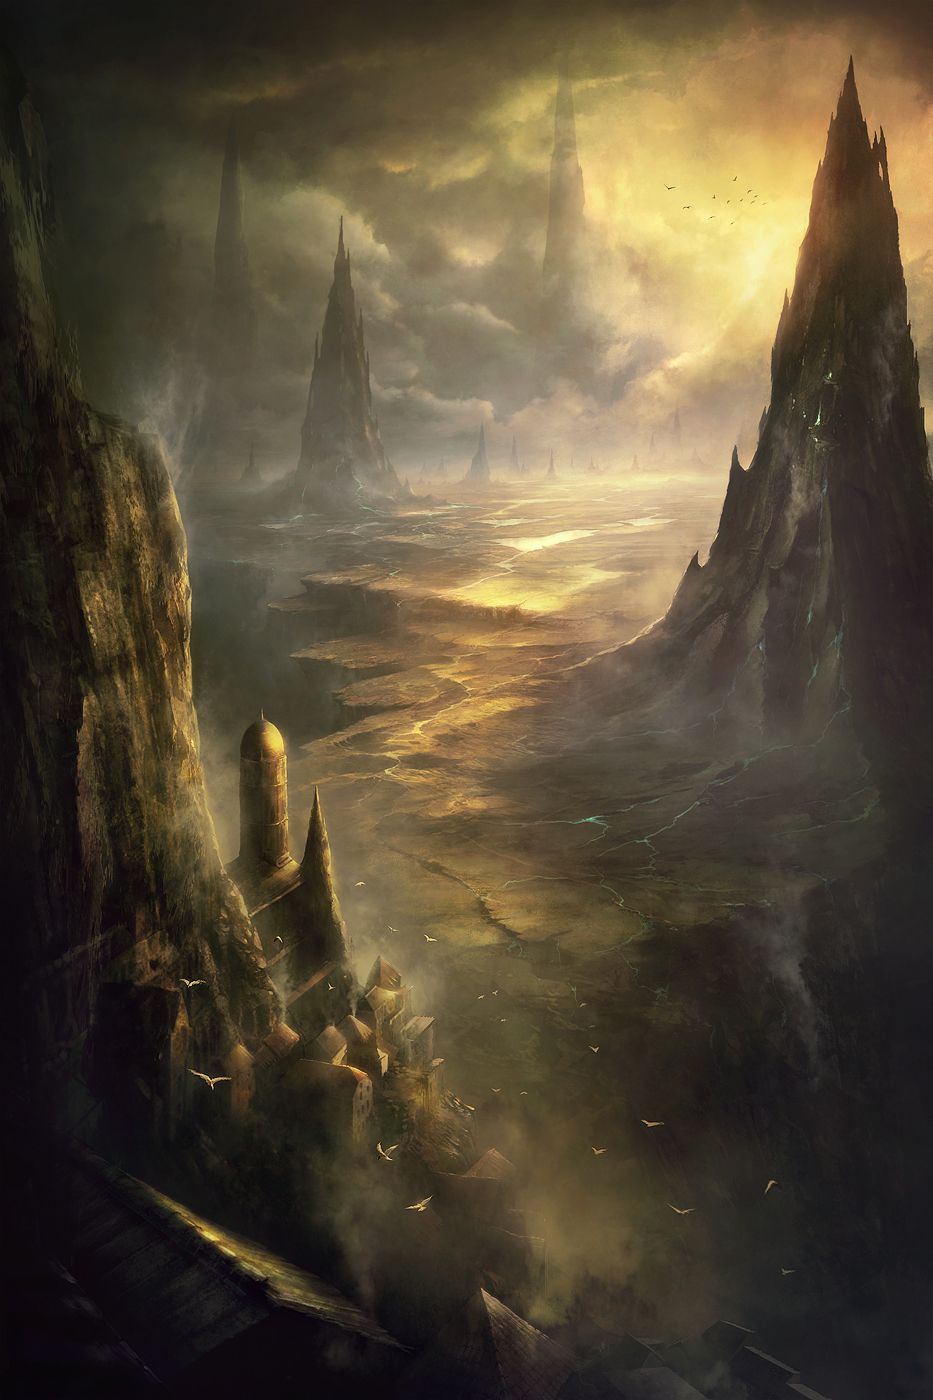 What does this scenery inspire in you?  Altlith spire by korbox.deviantart.com